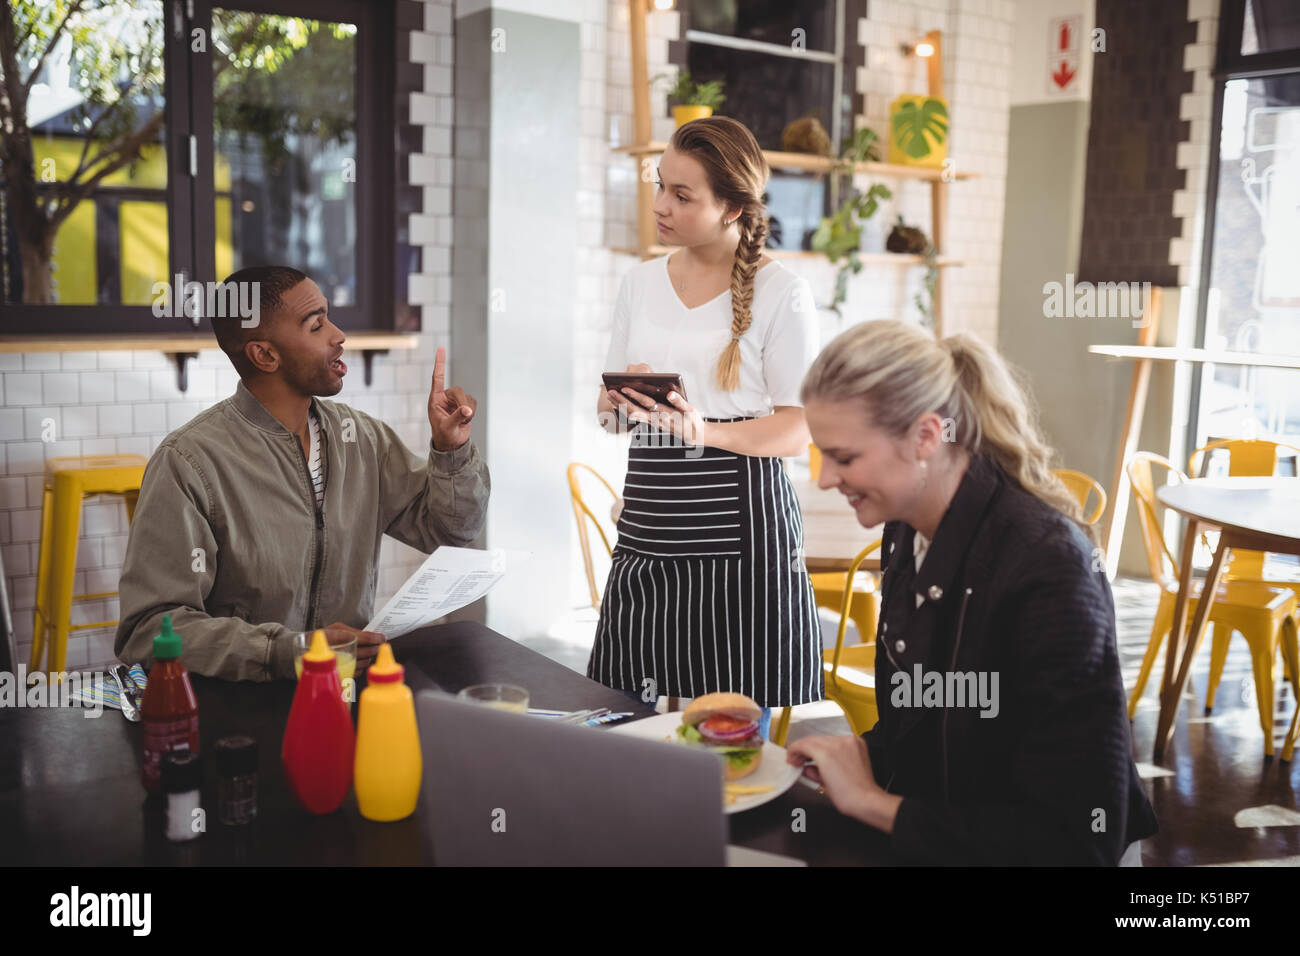 Young man ordering food to waitress while sitting with female friend at cafe Stock Photo